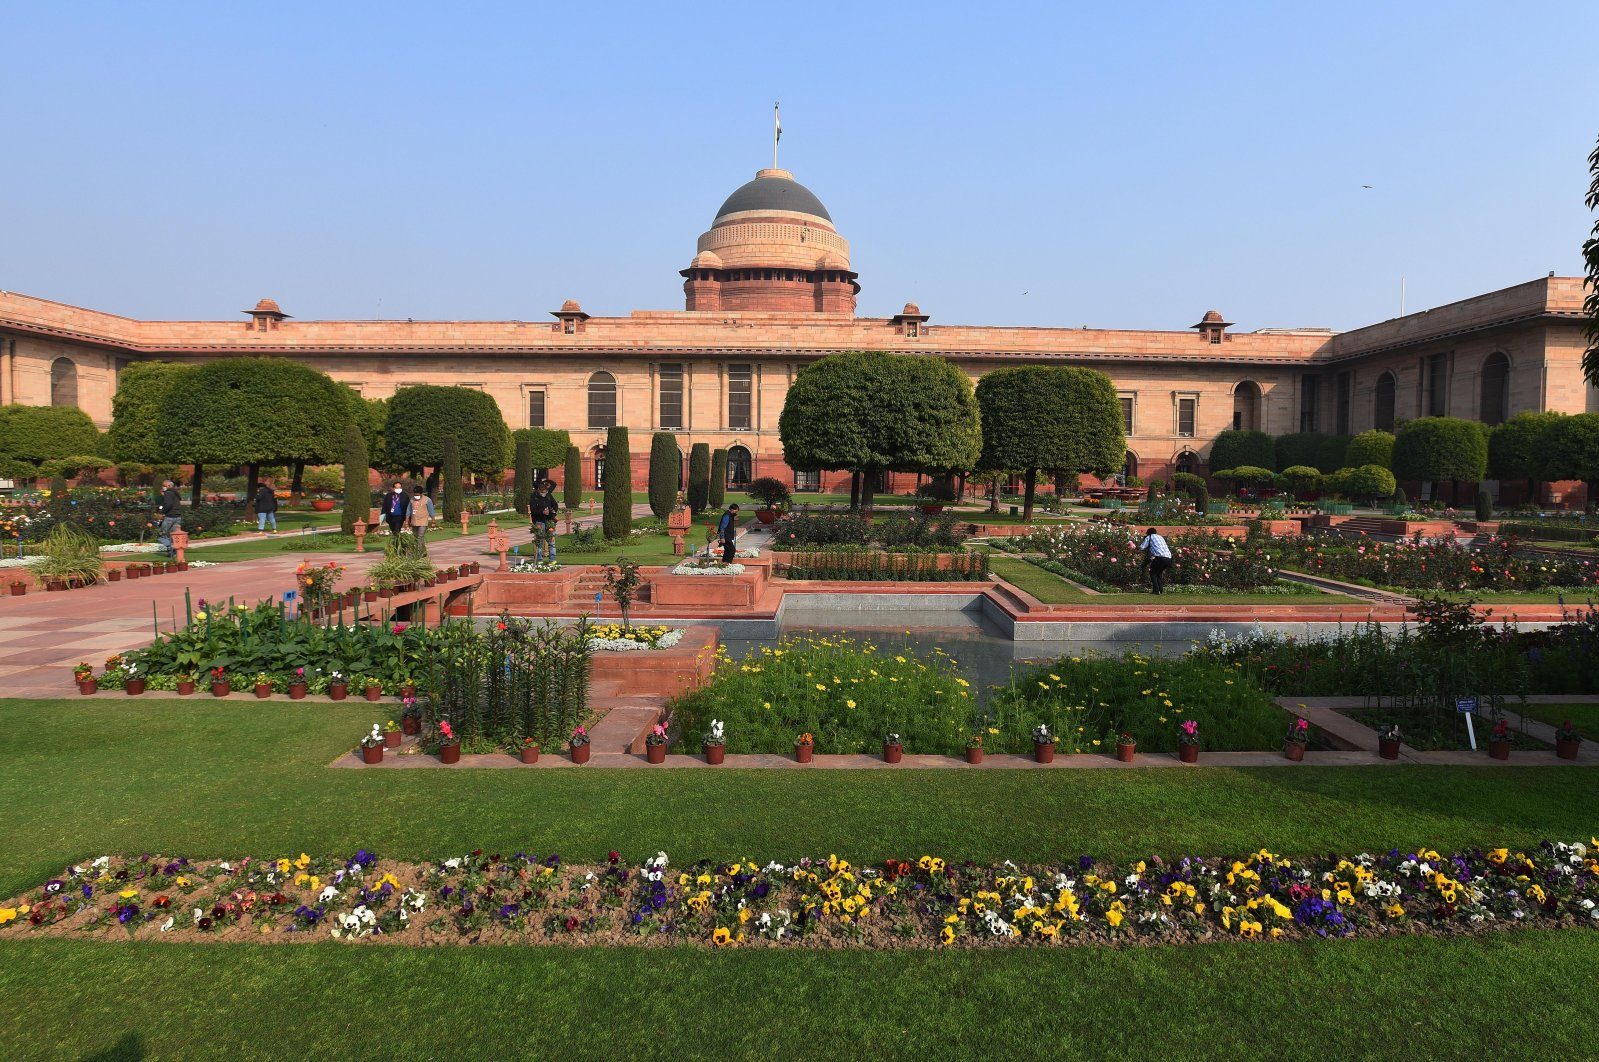 Flowers blooming at Mughal Garden of Rashtrapati Bhavan, Kashmir, on February 11, 2021. (Getty Images)